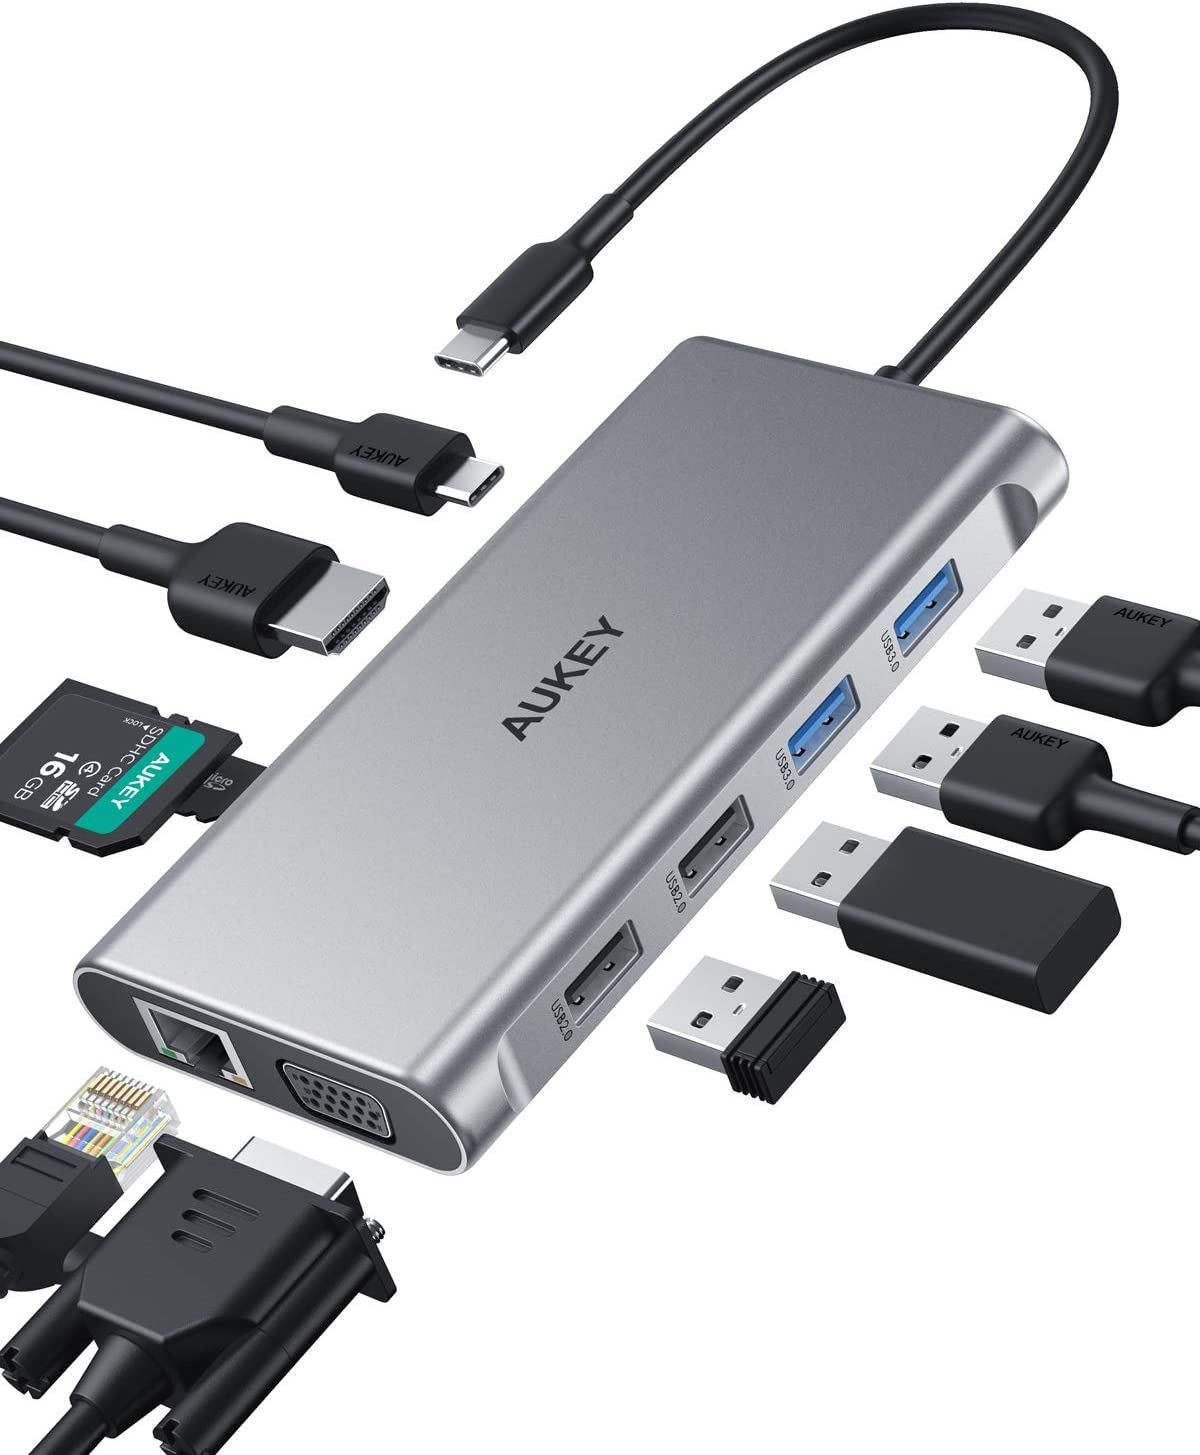 AUKEY USB C Hub 10-in-1 Type C Adapter with Ethernet, 4K HDMI,VGA,2 USB 3.0,2 USB 2.0,100W PD,USB-C Data Port and SD/TF Docking Station for MacBookPro/Air(Thunderbolt 3) and Other USB-C Laptops